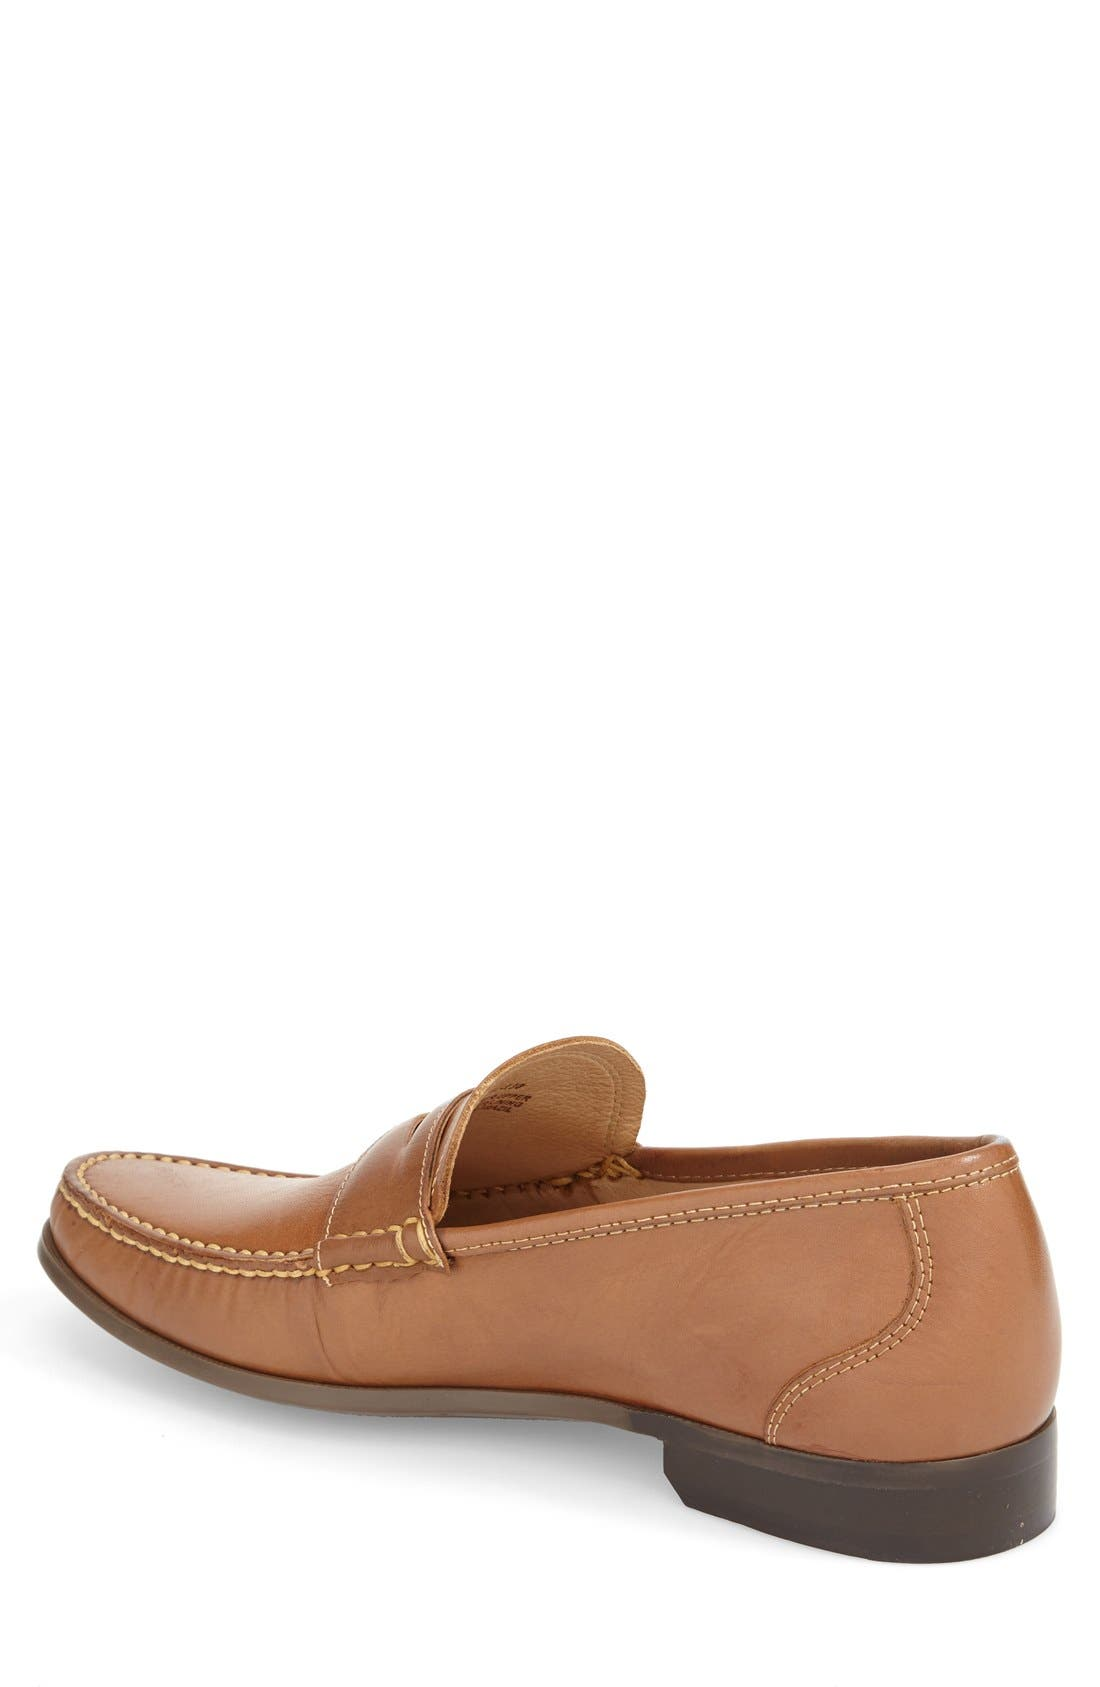 Penny Loafer,                             Alternate thumbnail 2, color,                             Brown Leather